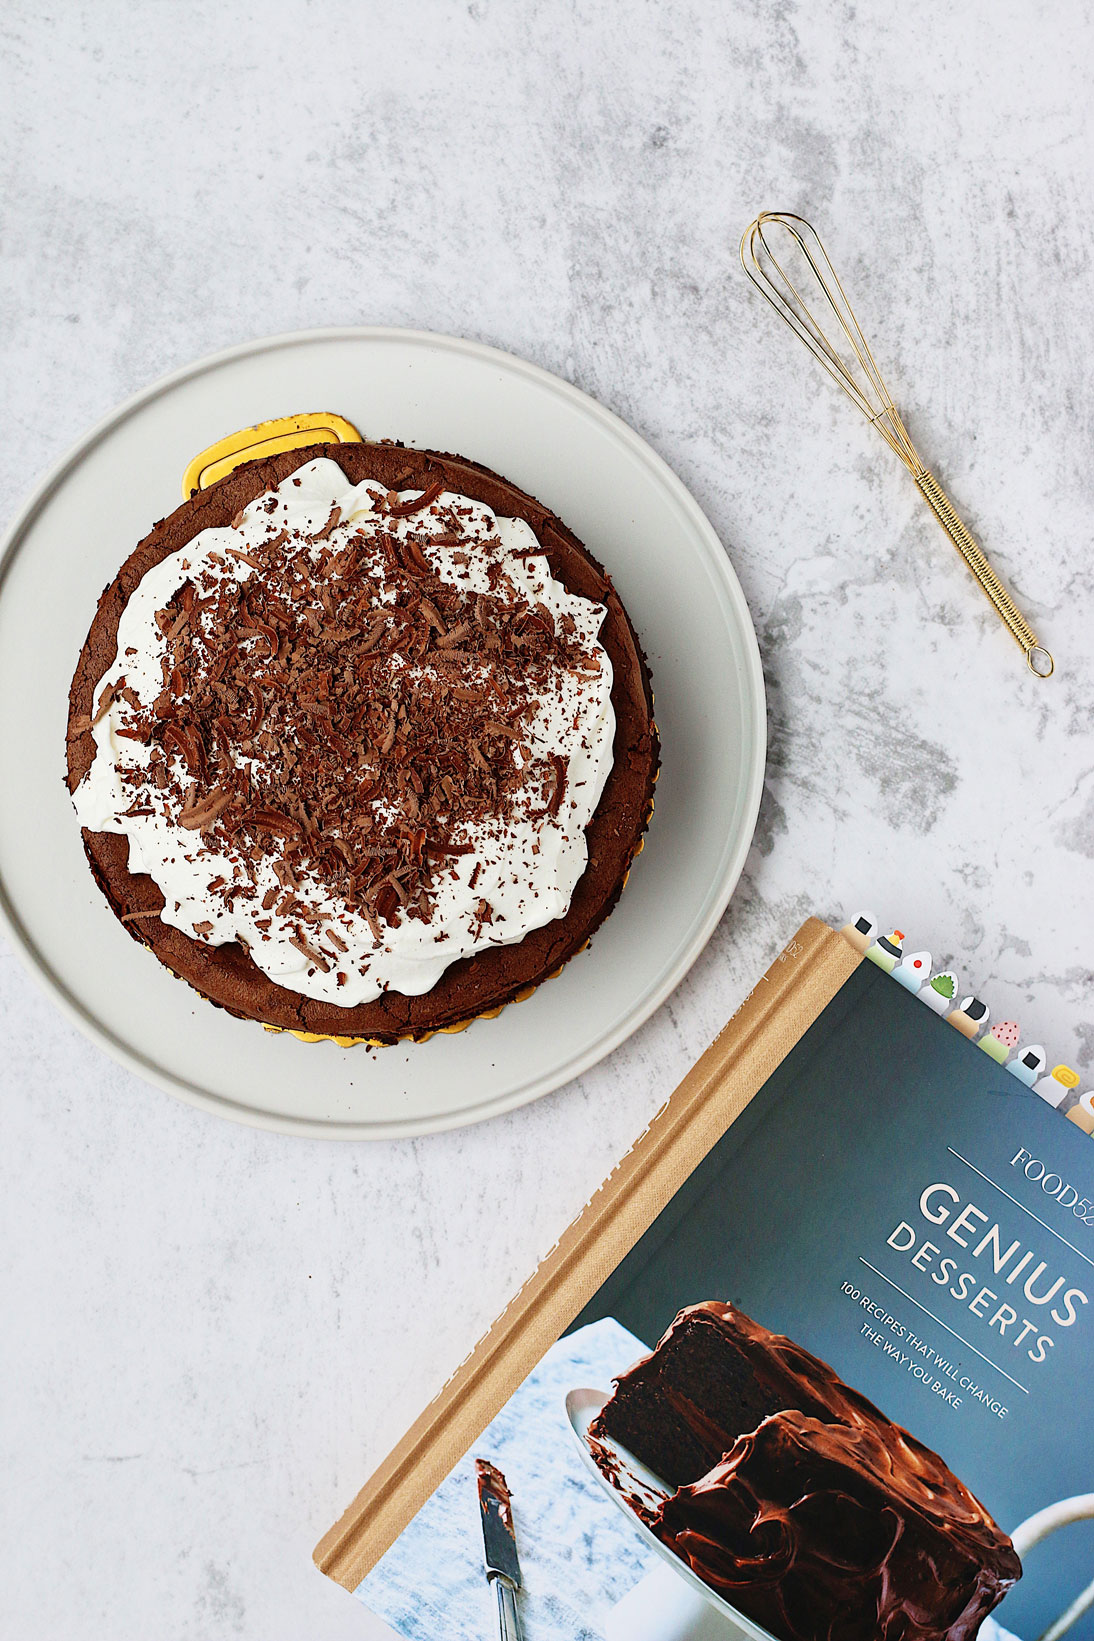 f52-genius-dessert-chocolate-cloud-cake-with-book